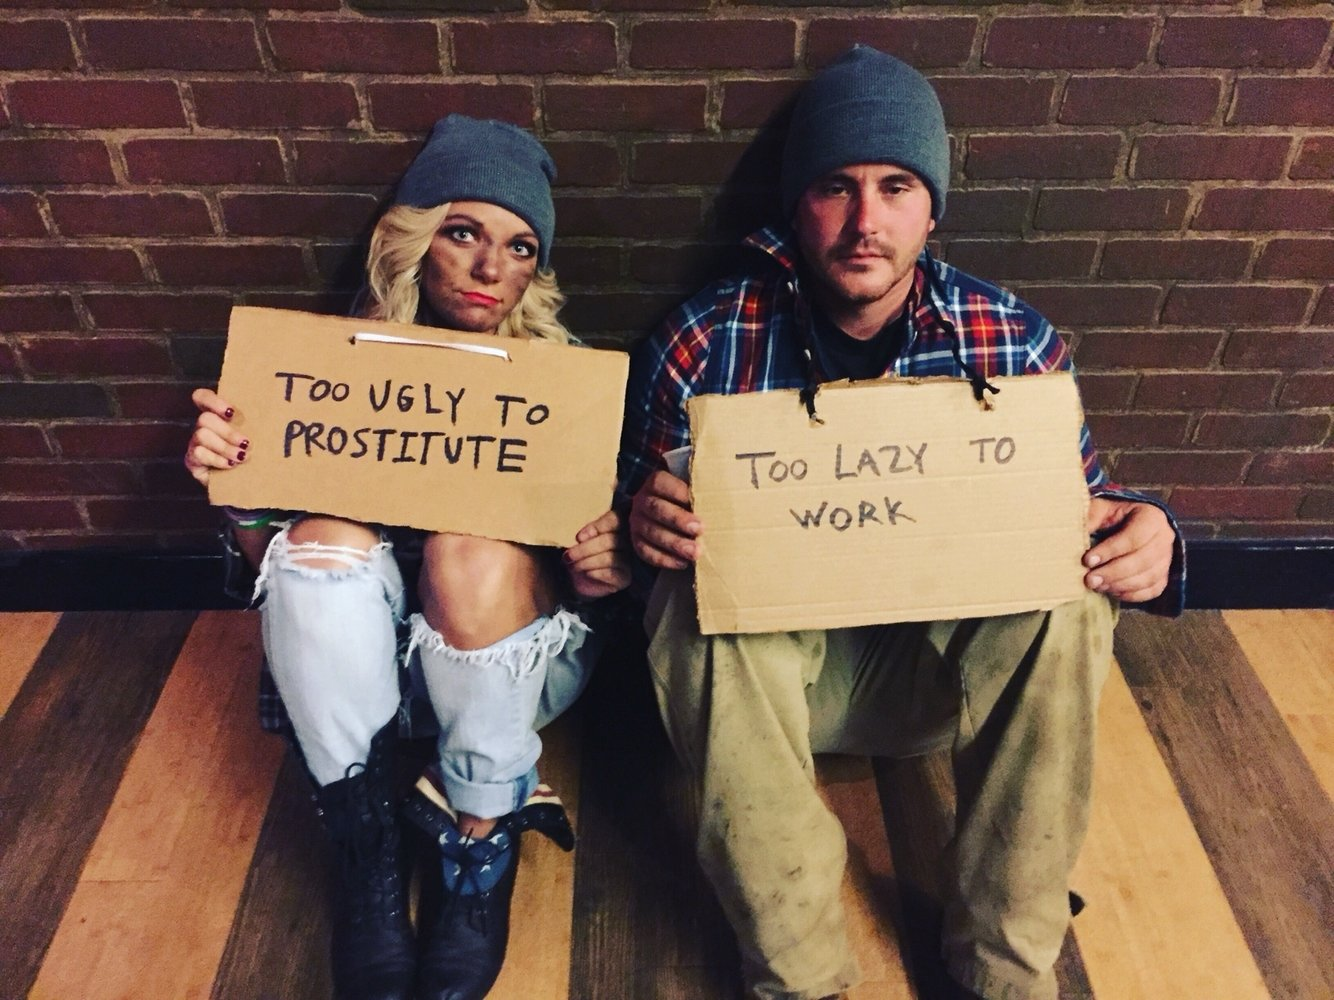 10 Ideal Clever Ideas For Halloween Costumes funny couples costumes holidays pinterest funny couple 11 2020